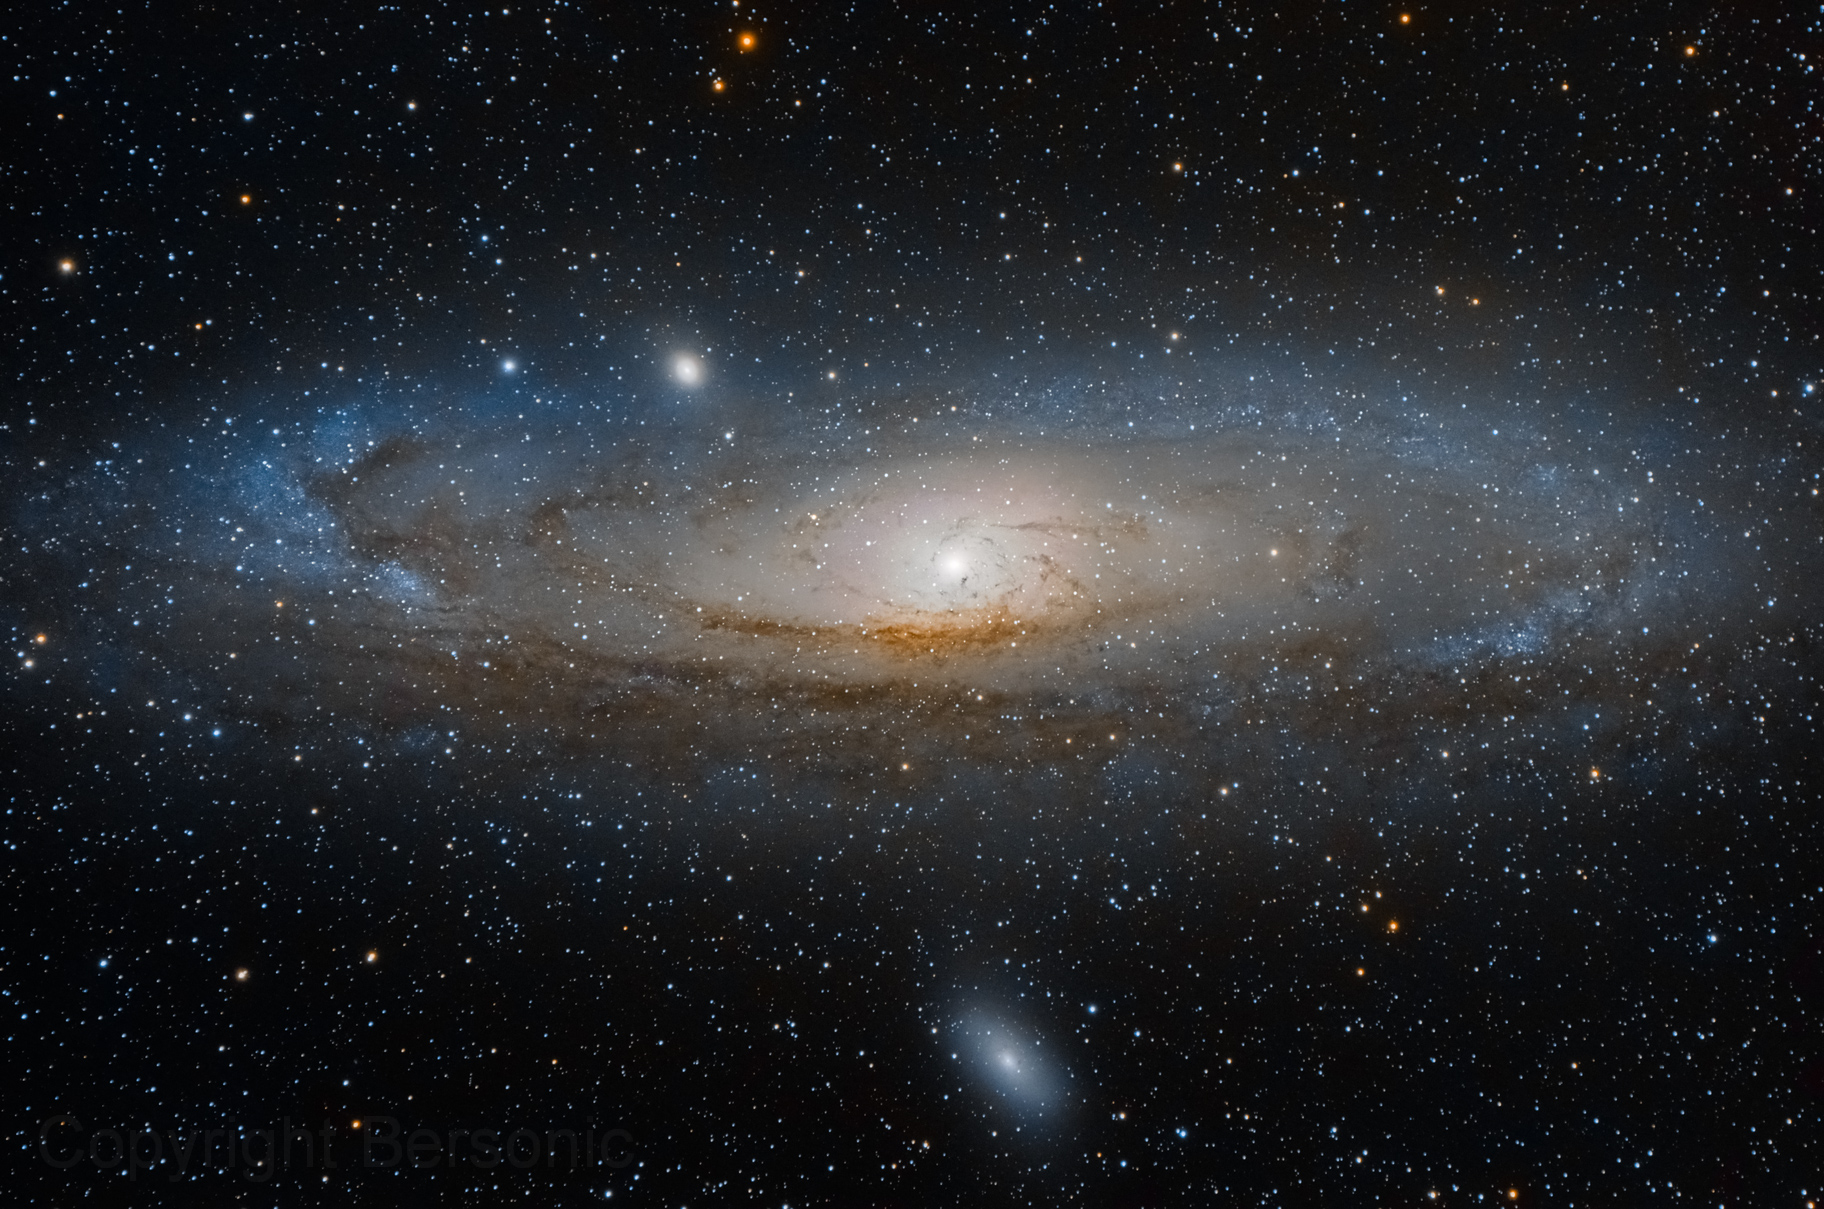 andromeda galaxy - photo #5